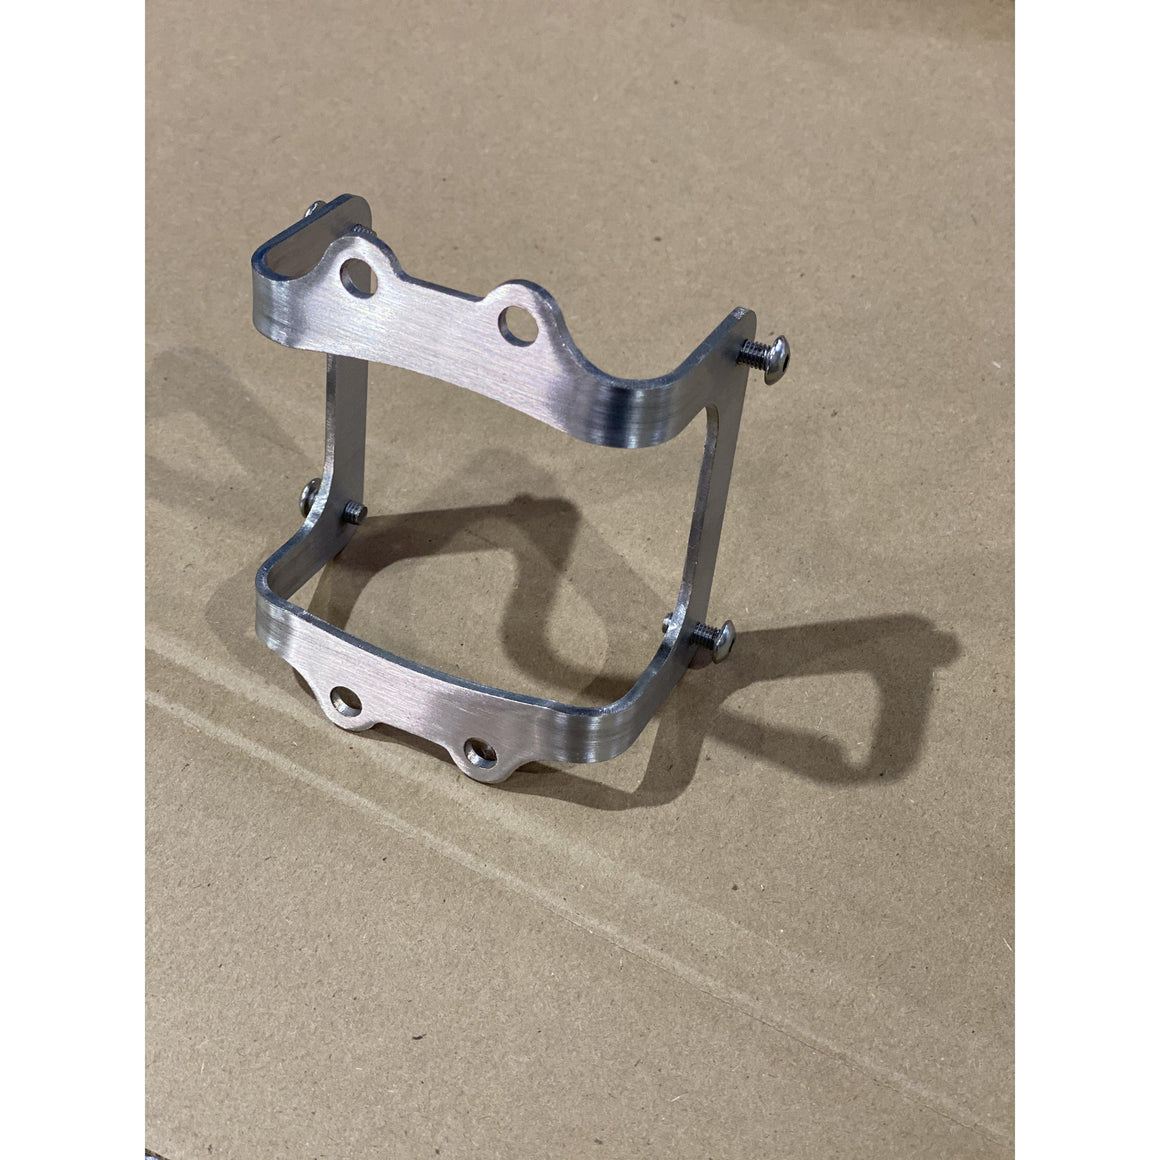 Bottle Holder Mounting Bracket-Recreational-Cascade Manufacturing